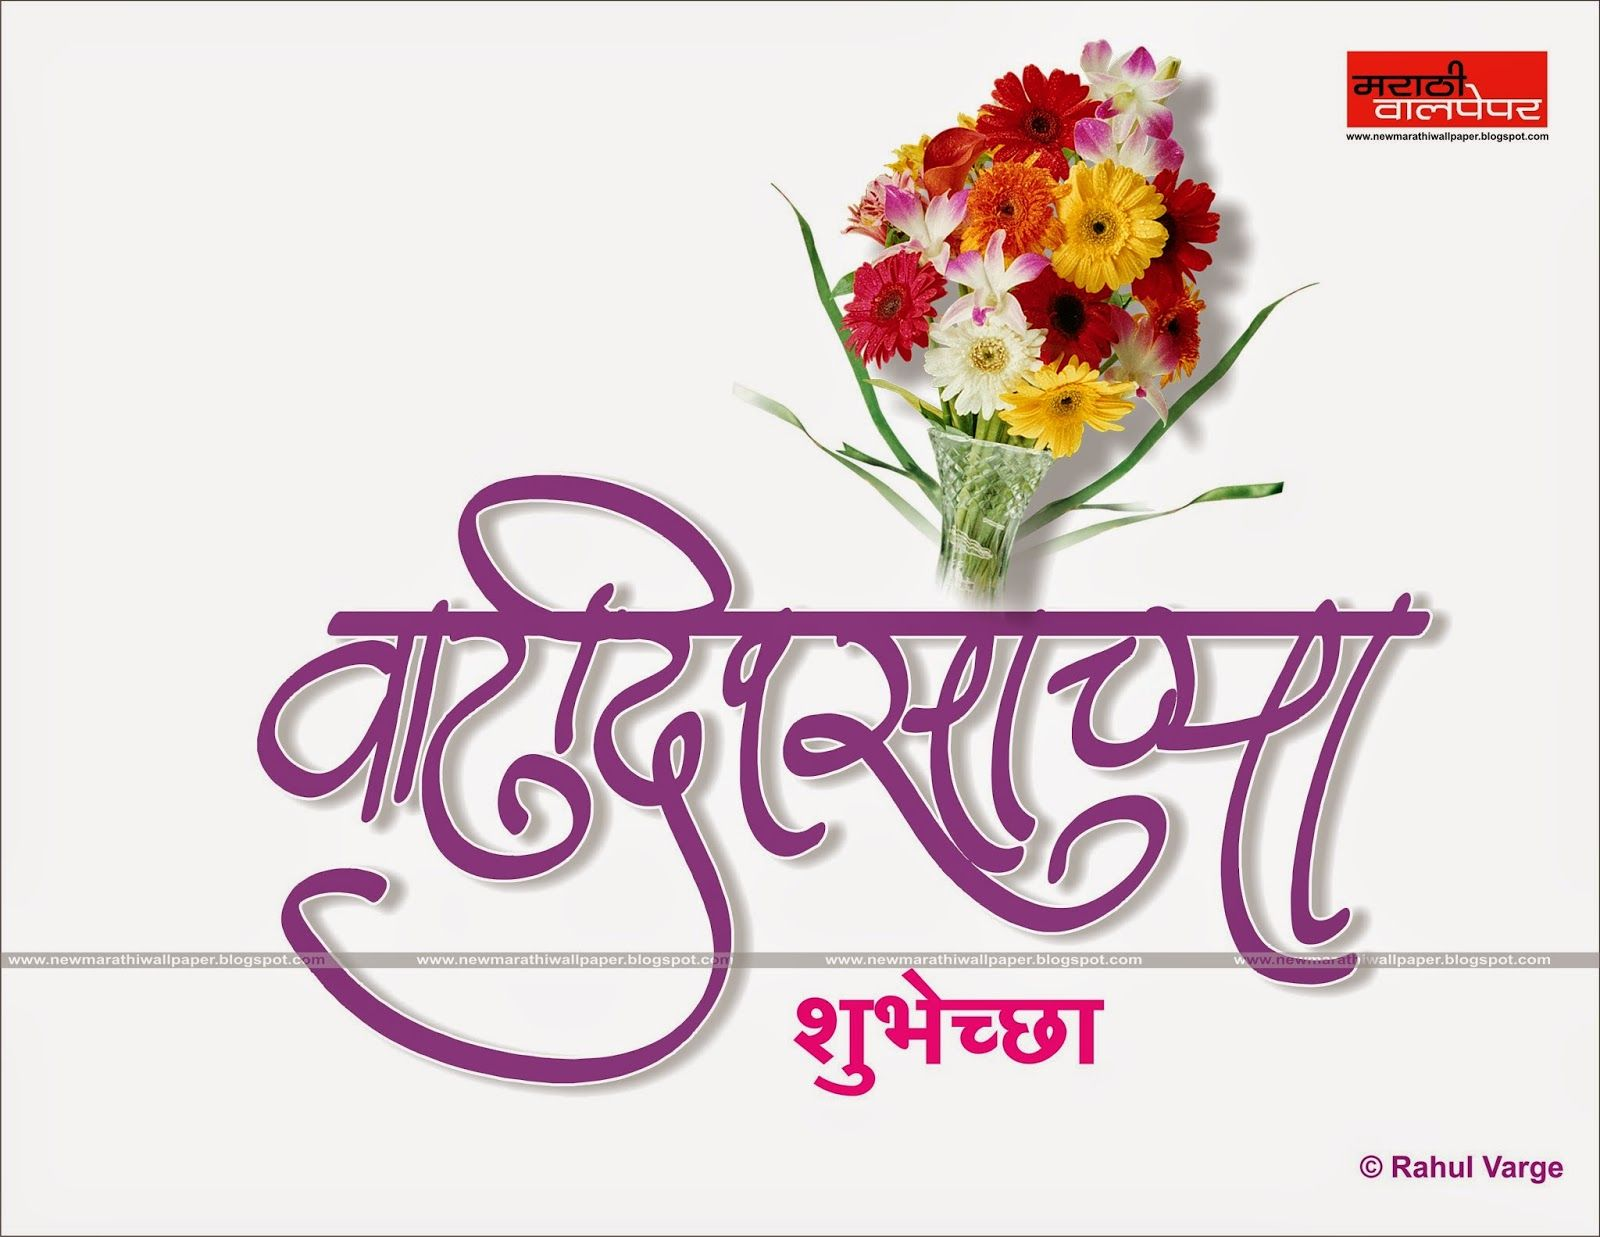 Birthday Marathi Wallpaper New Marathi Walllpaper www